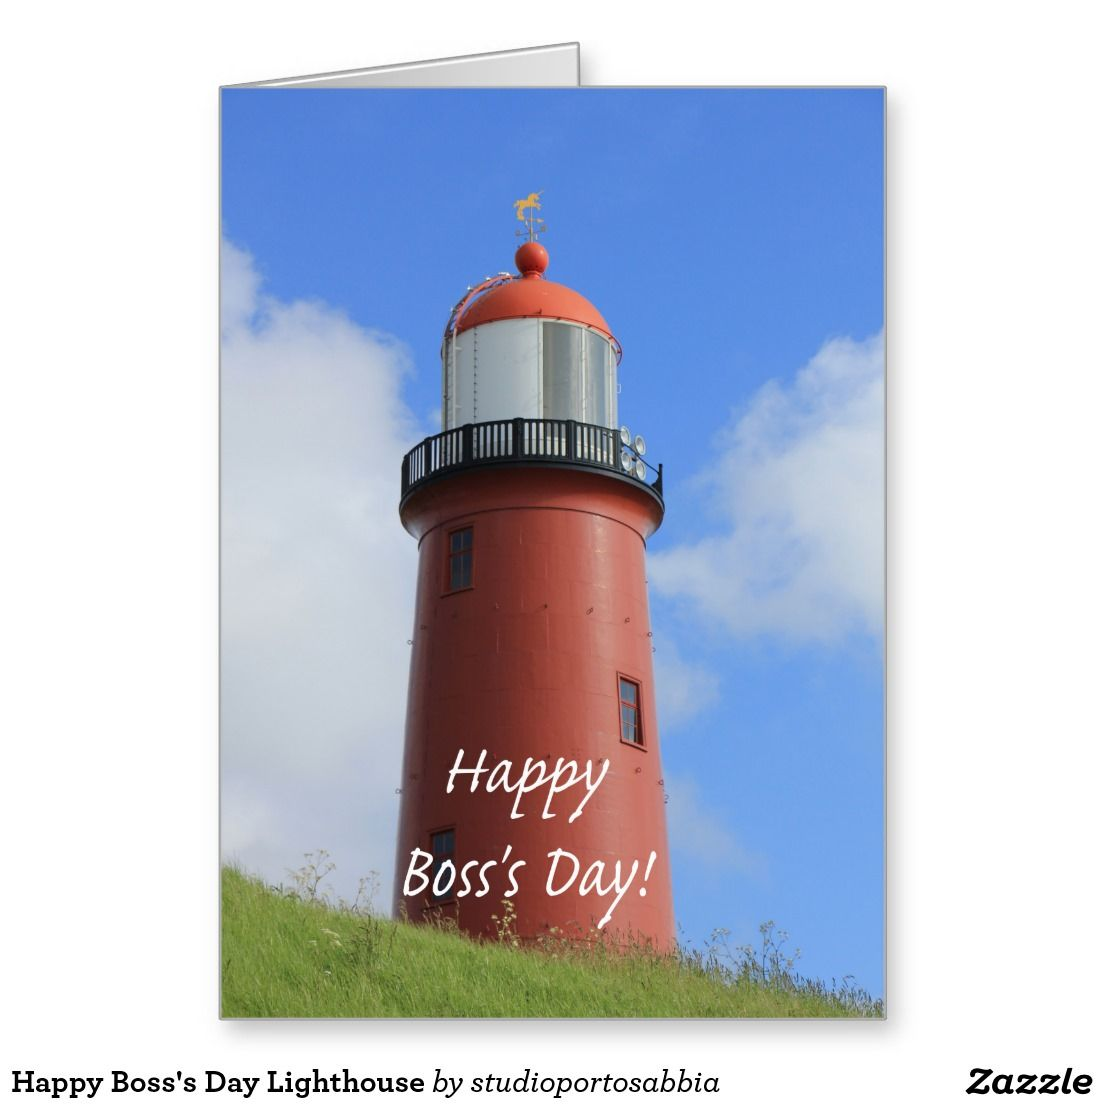 Happy bosss day lighthouse greeting card shared board for happy bosss day lighthouse greeting card kristyandbryce Choice Image